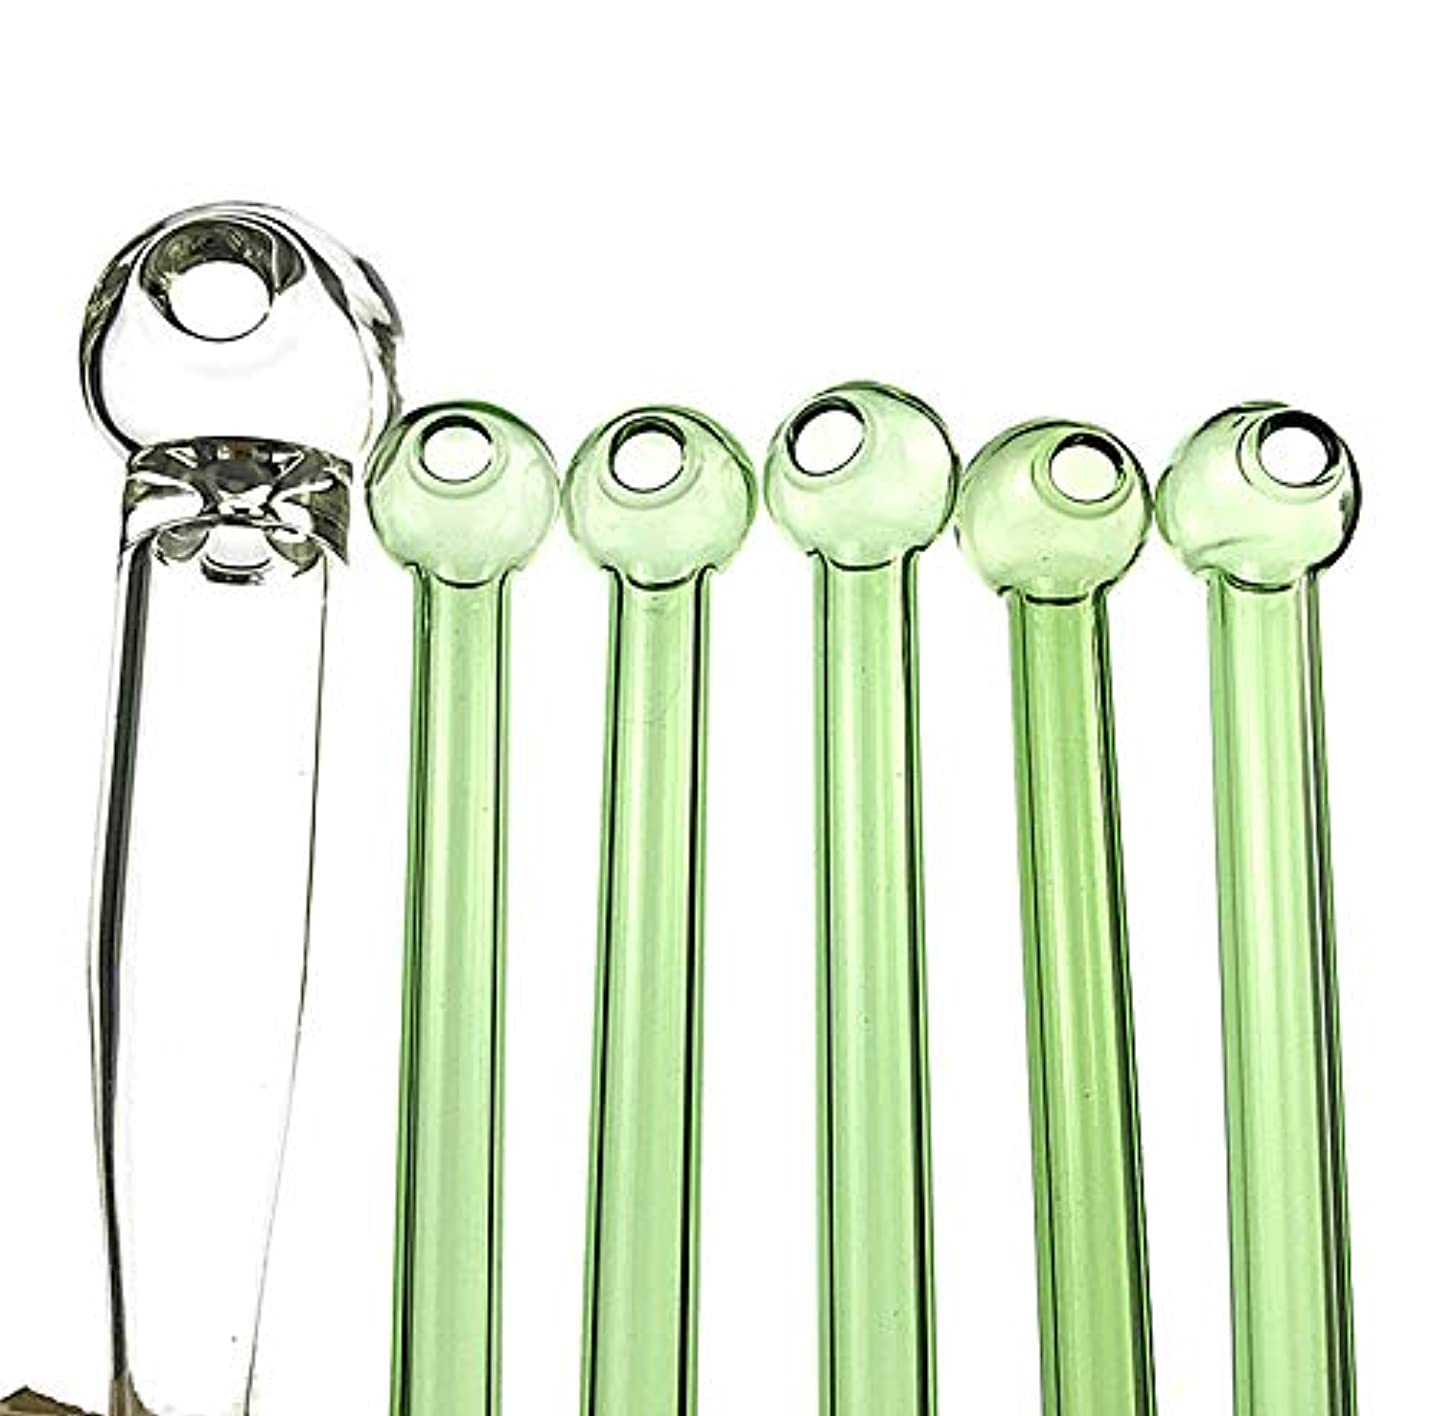 Raymond Chi 10 Pieces Fragnance Colored Oil Bowl Burner-4.1inches (Green)